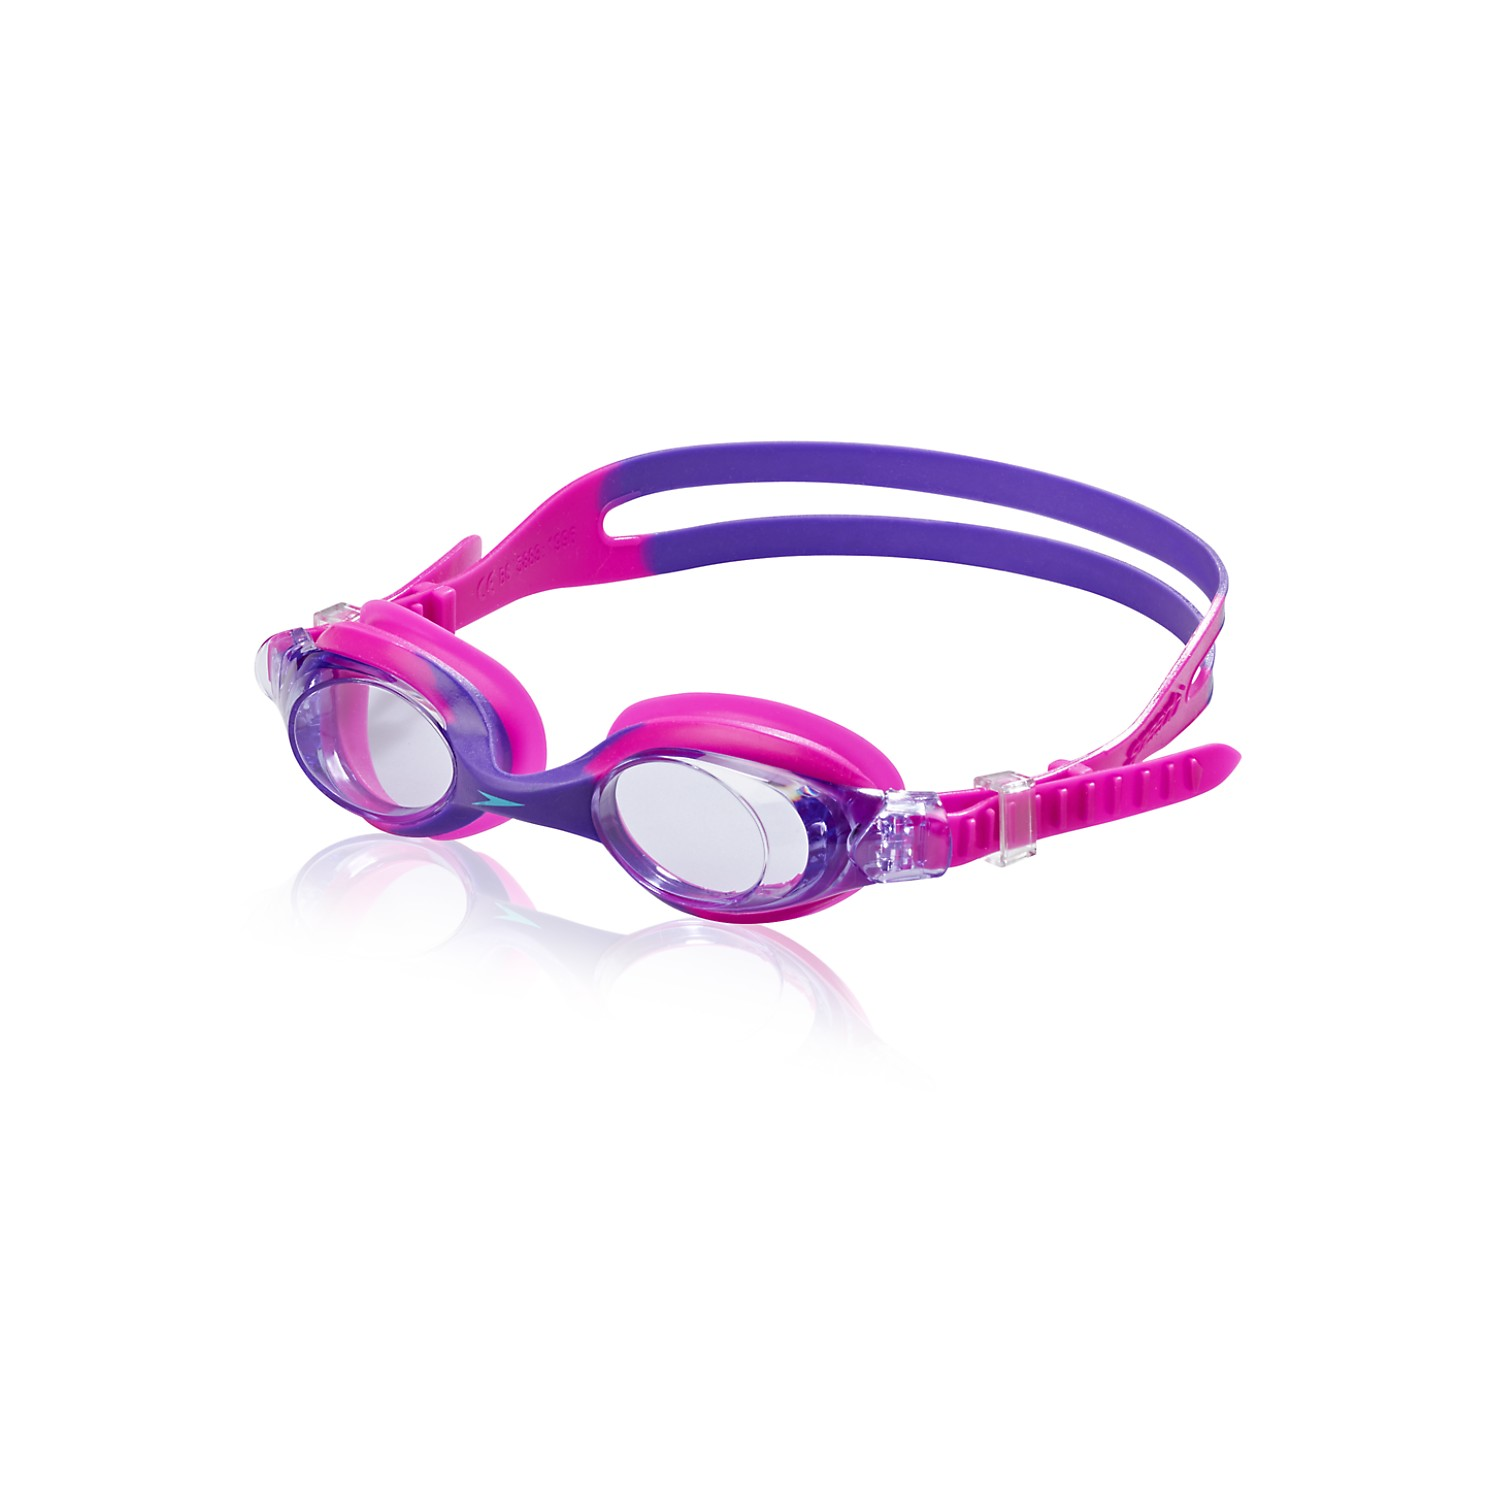 Speedo Kids Skoogles Goggle Kids Recreational Swim Goggle Glow Pink by Speedo